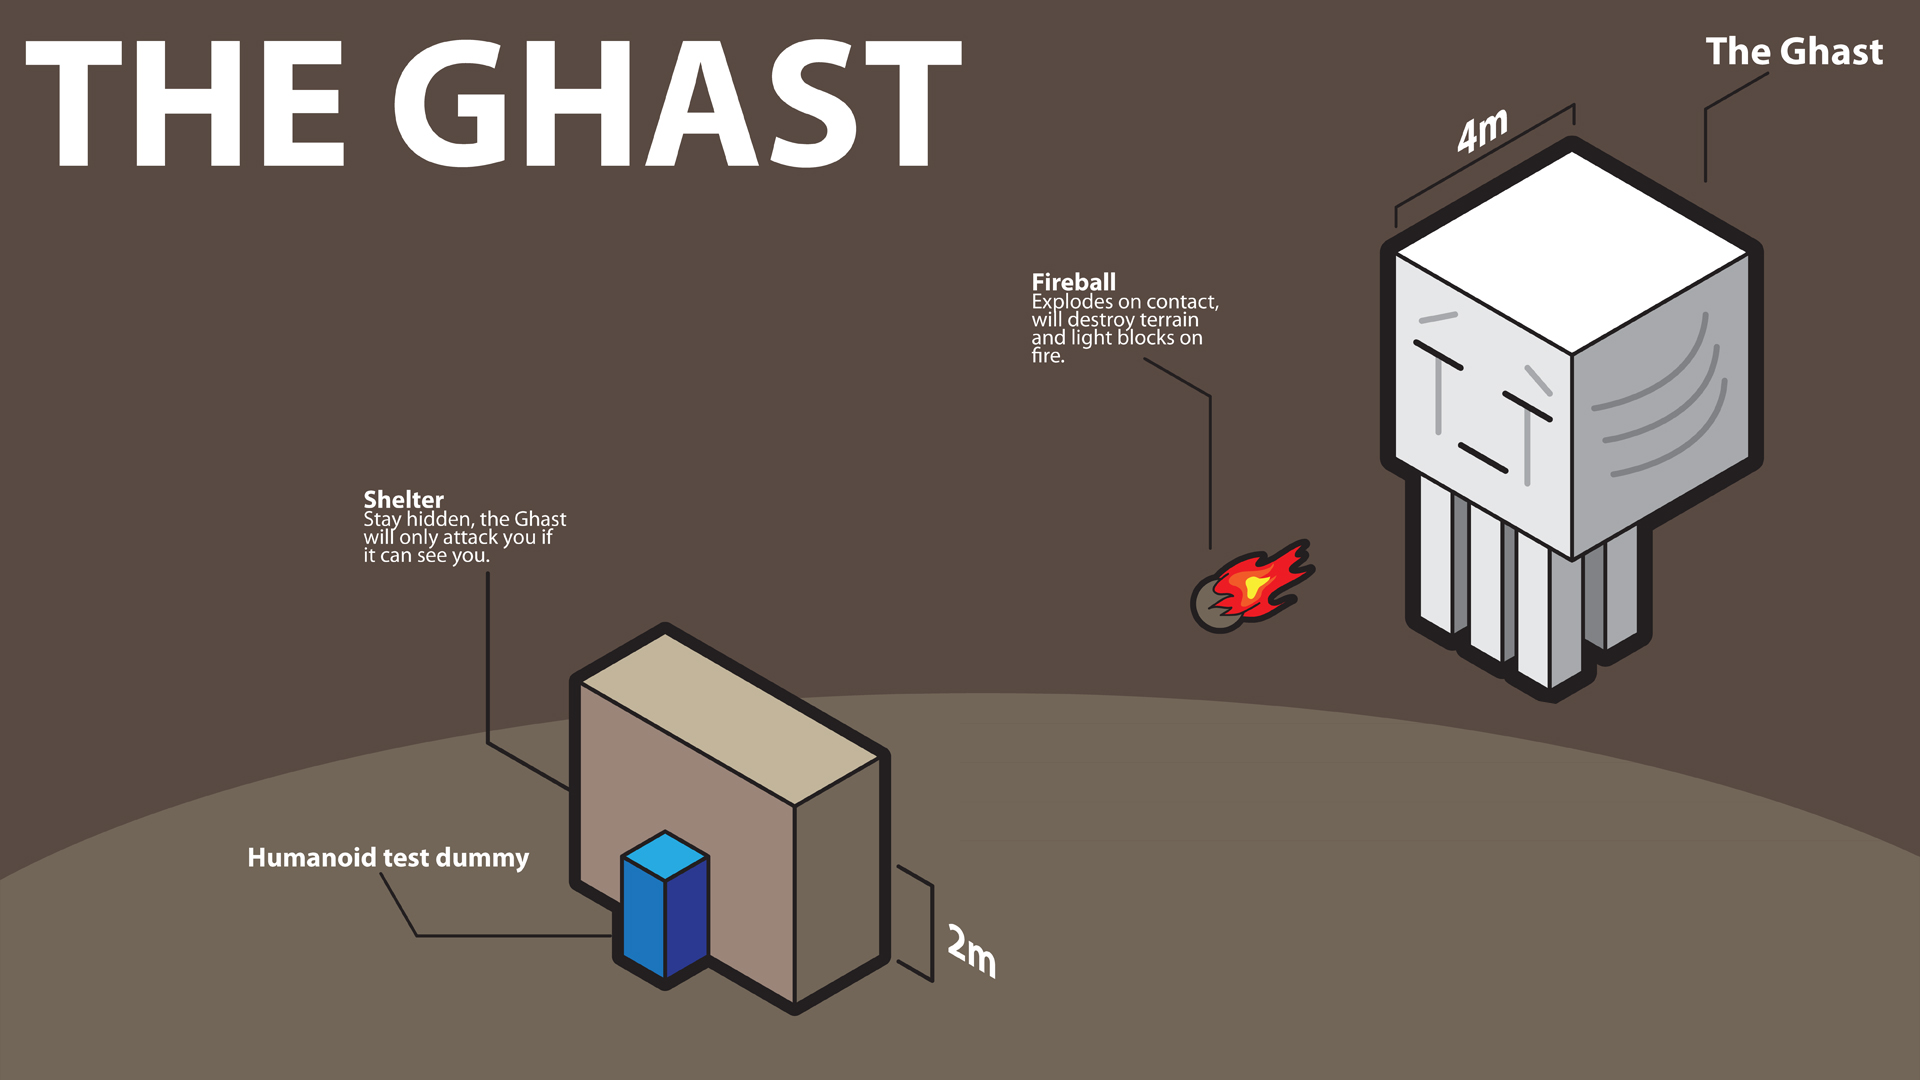 The Ghast in a test Room HD Wallpaper Background Image 1920x1080